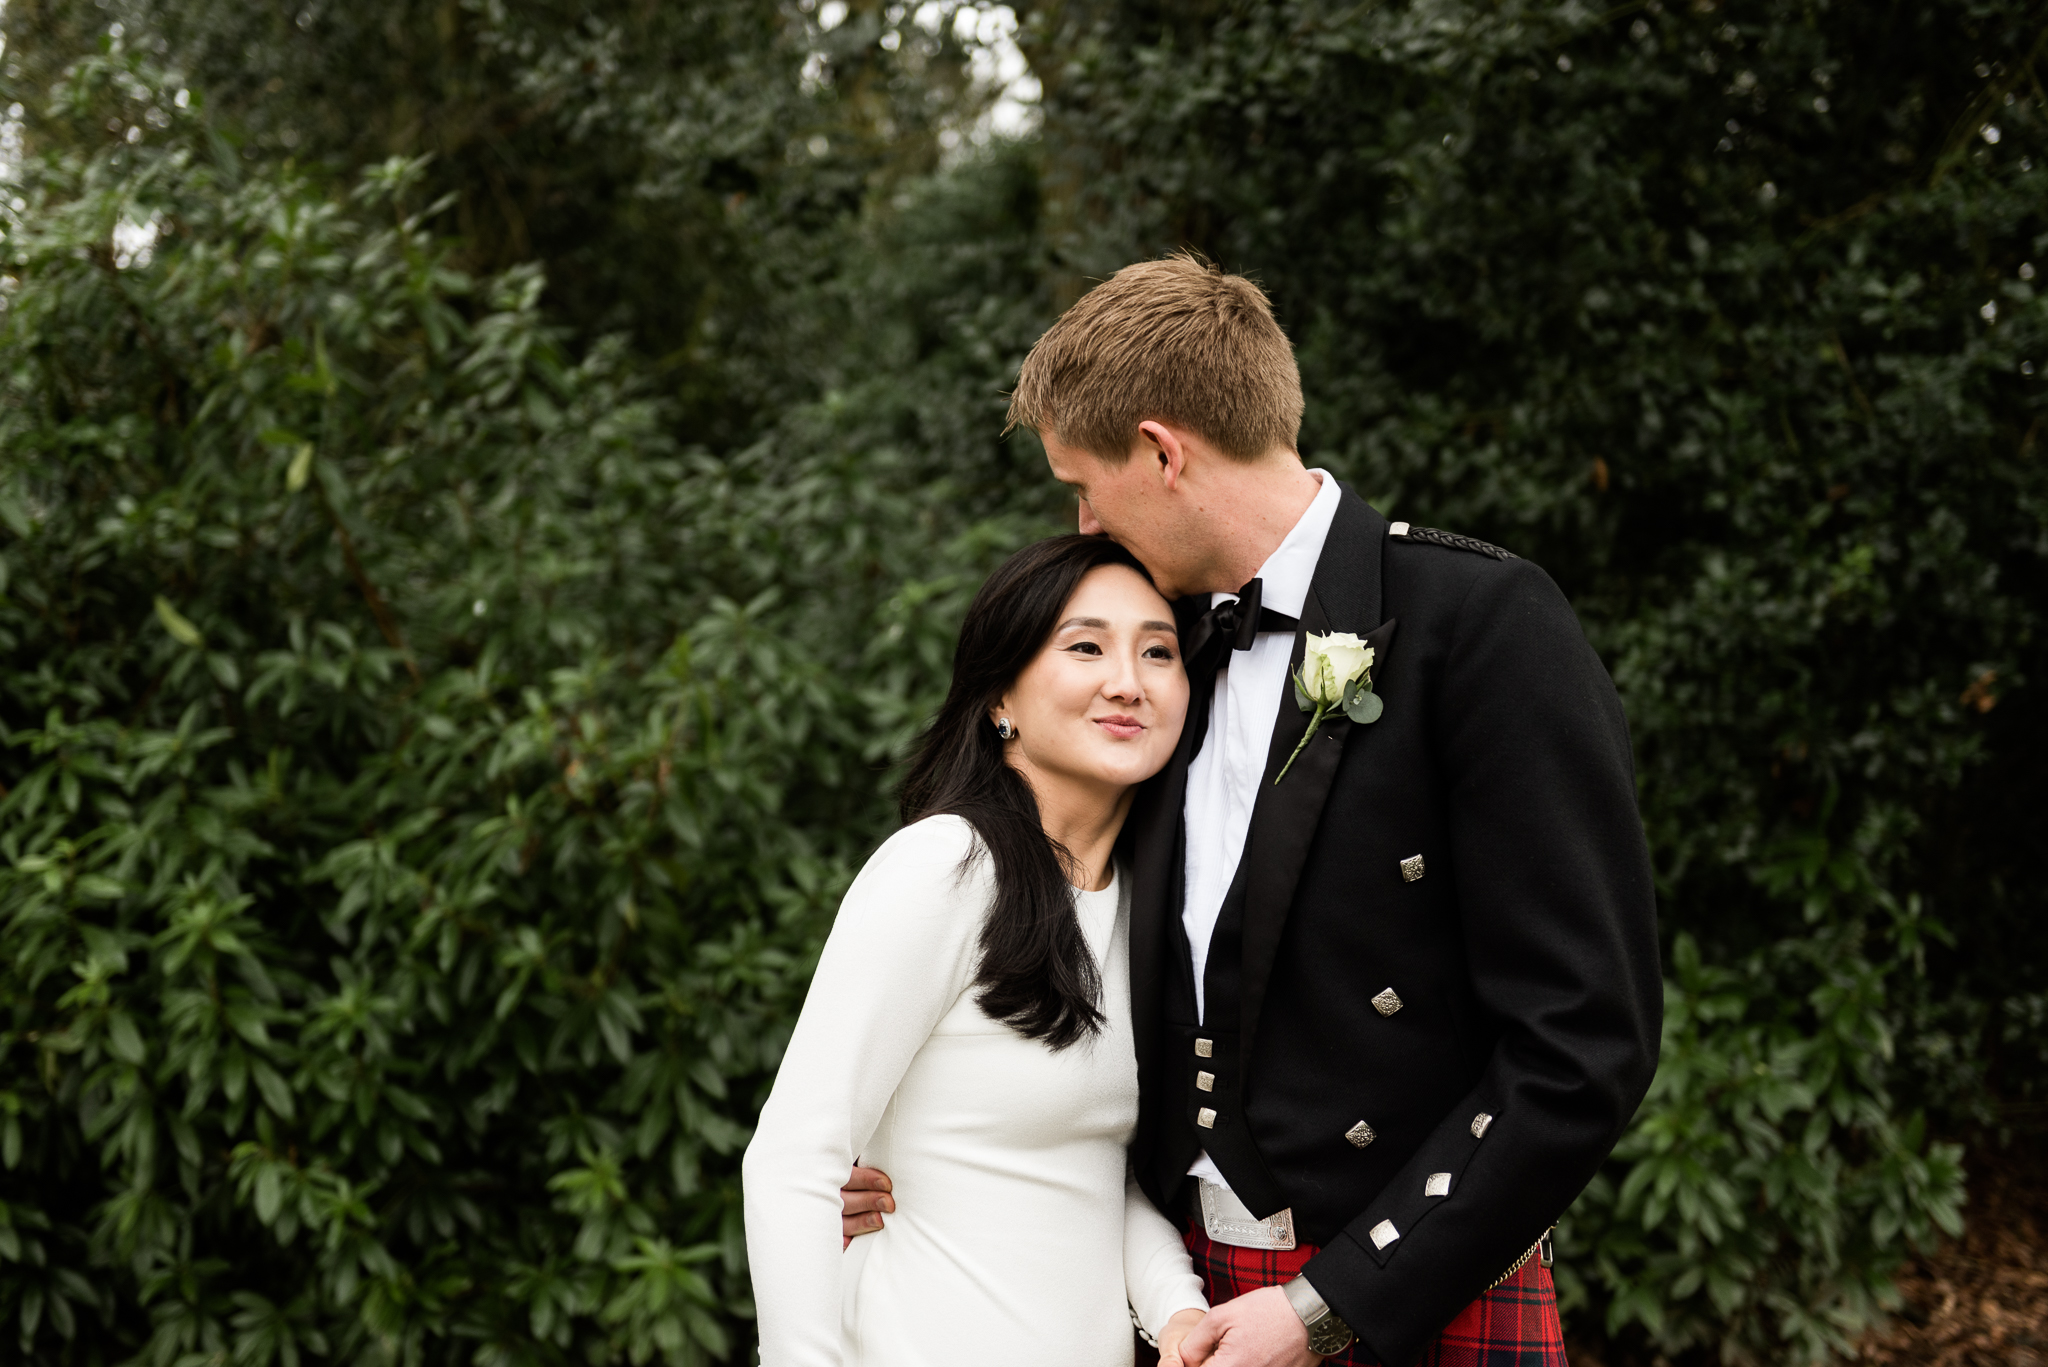 English Winter Wedding Photography at Somerford Hall, Staffordshire Red Bus Double Decker Kilts Bagpiper-49.jpg